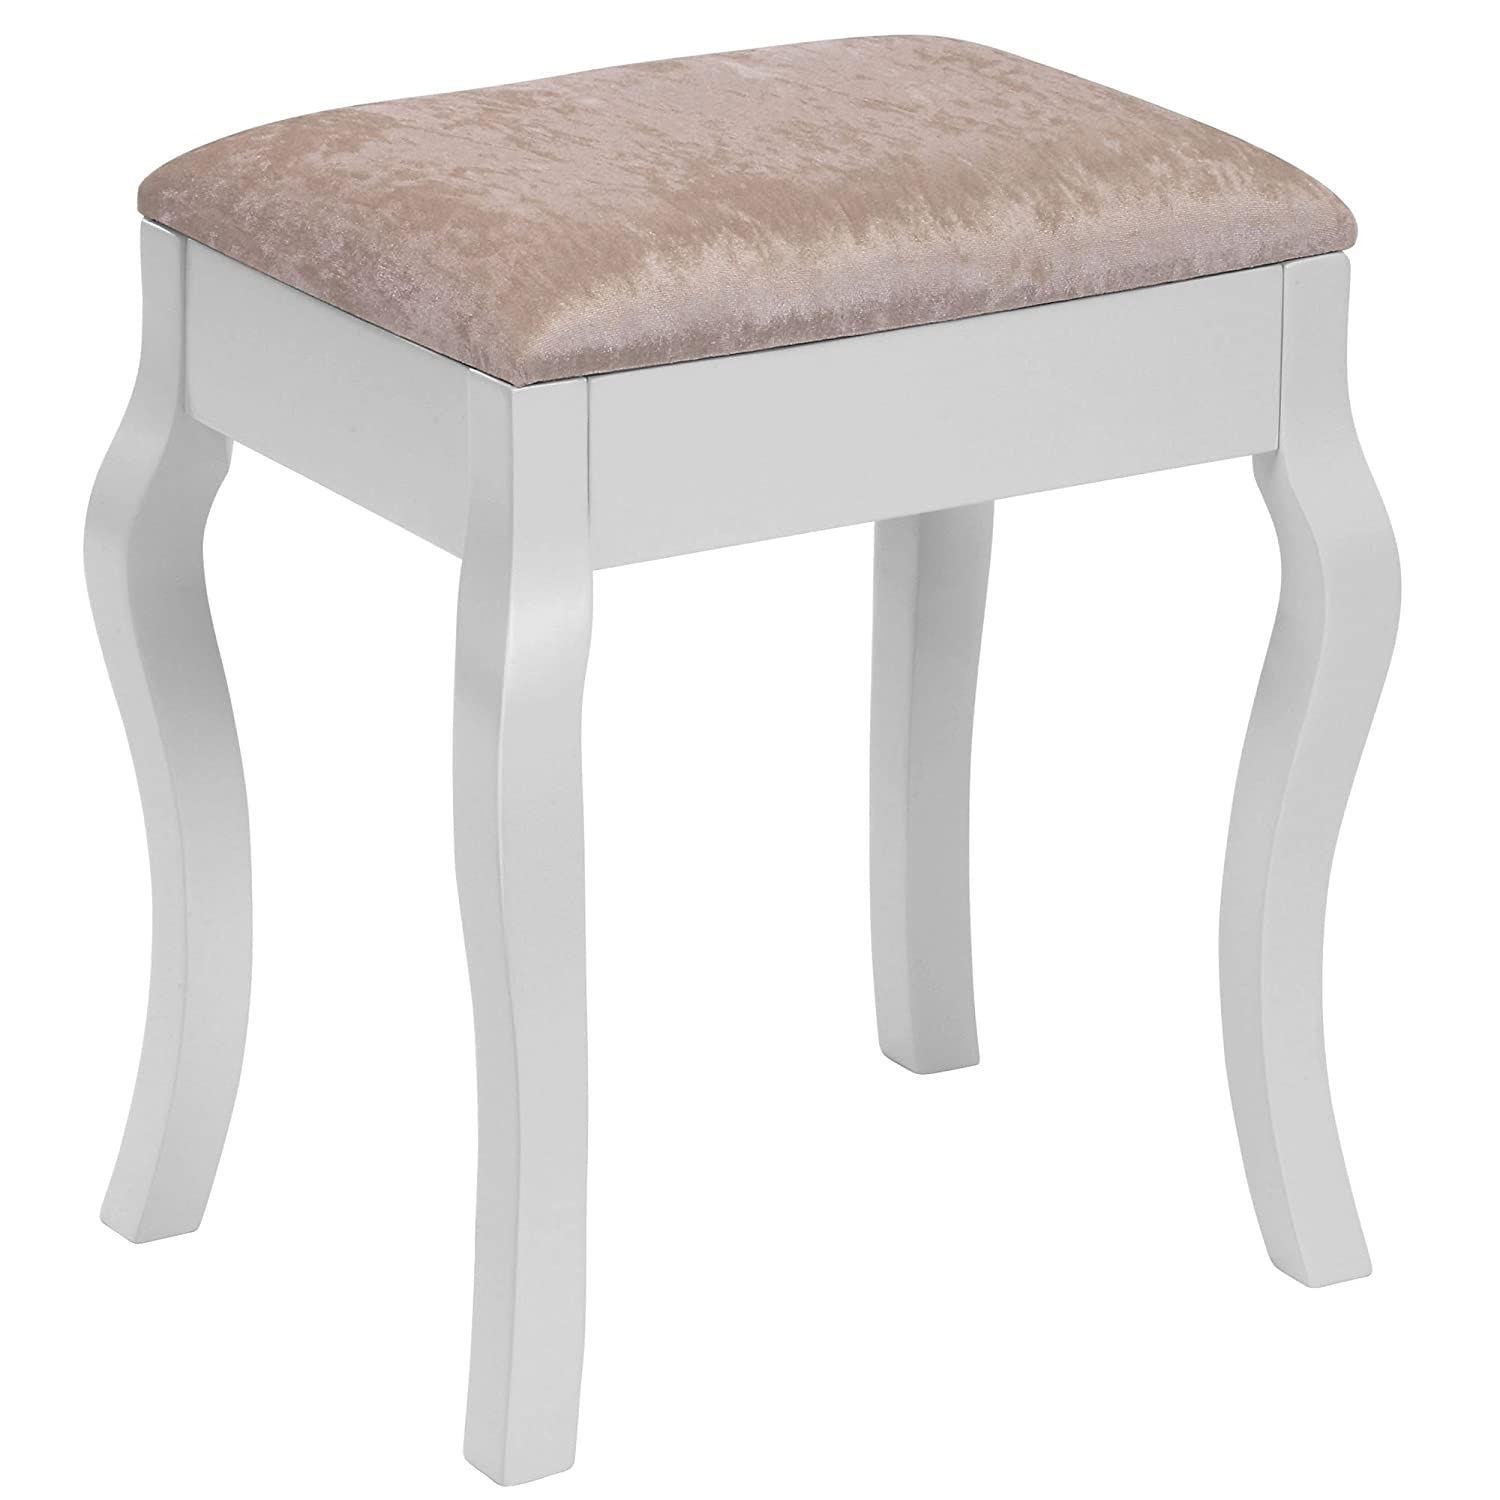 Stool For Bedroom Amazoncouk Best Sellers The Most Popular Items In Bedroom